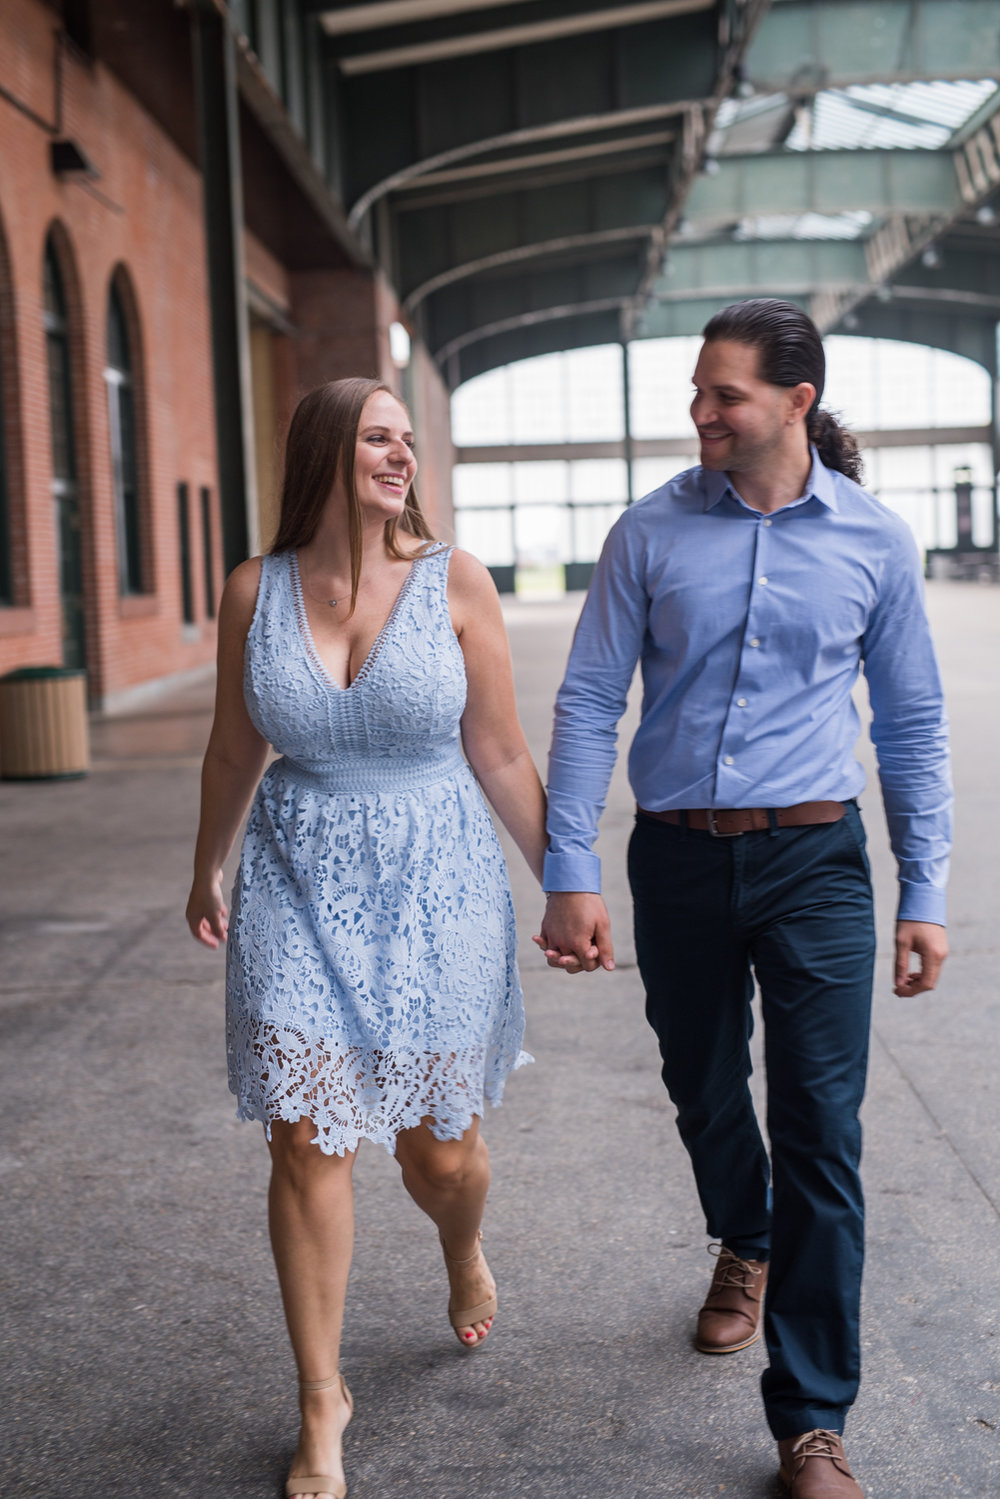 Layne+Chris- Liberty State Park Engagement Session- New Jersey- Olivia Christina Photo-1.JPG